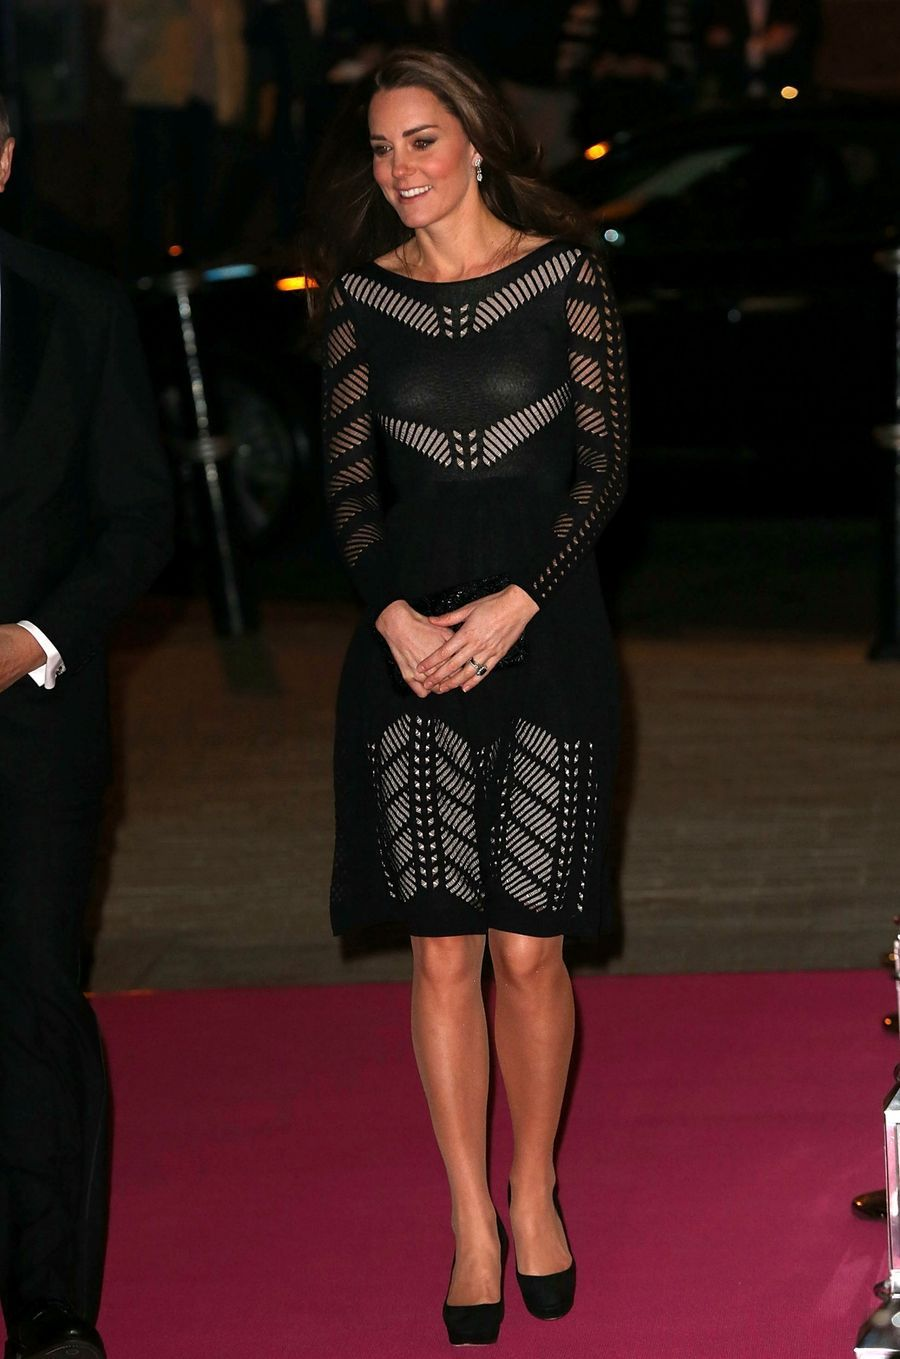 Pregnant Kate Middleton Is Glowing In Daring Black Temperley Flare Dress 3am Mirror Online Fashion Duchess Of Cambridge Kate Middleton